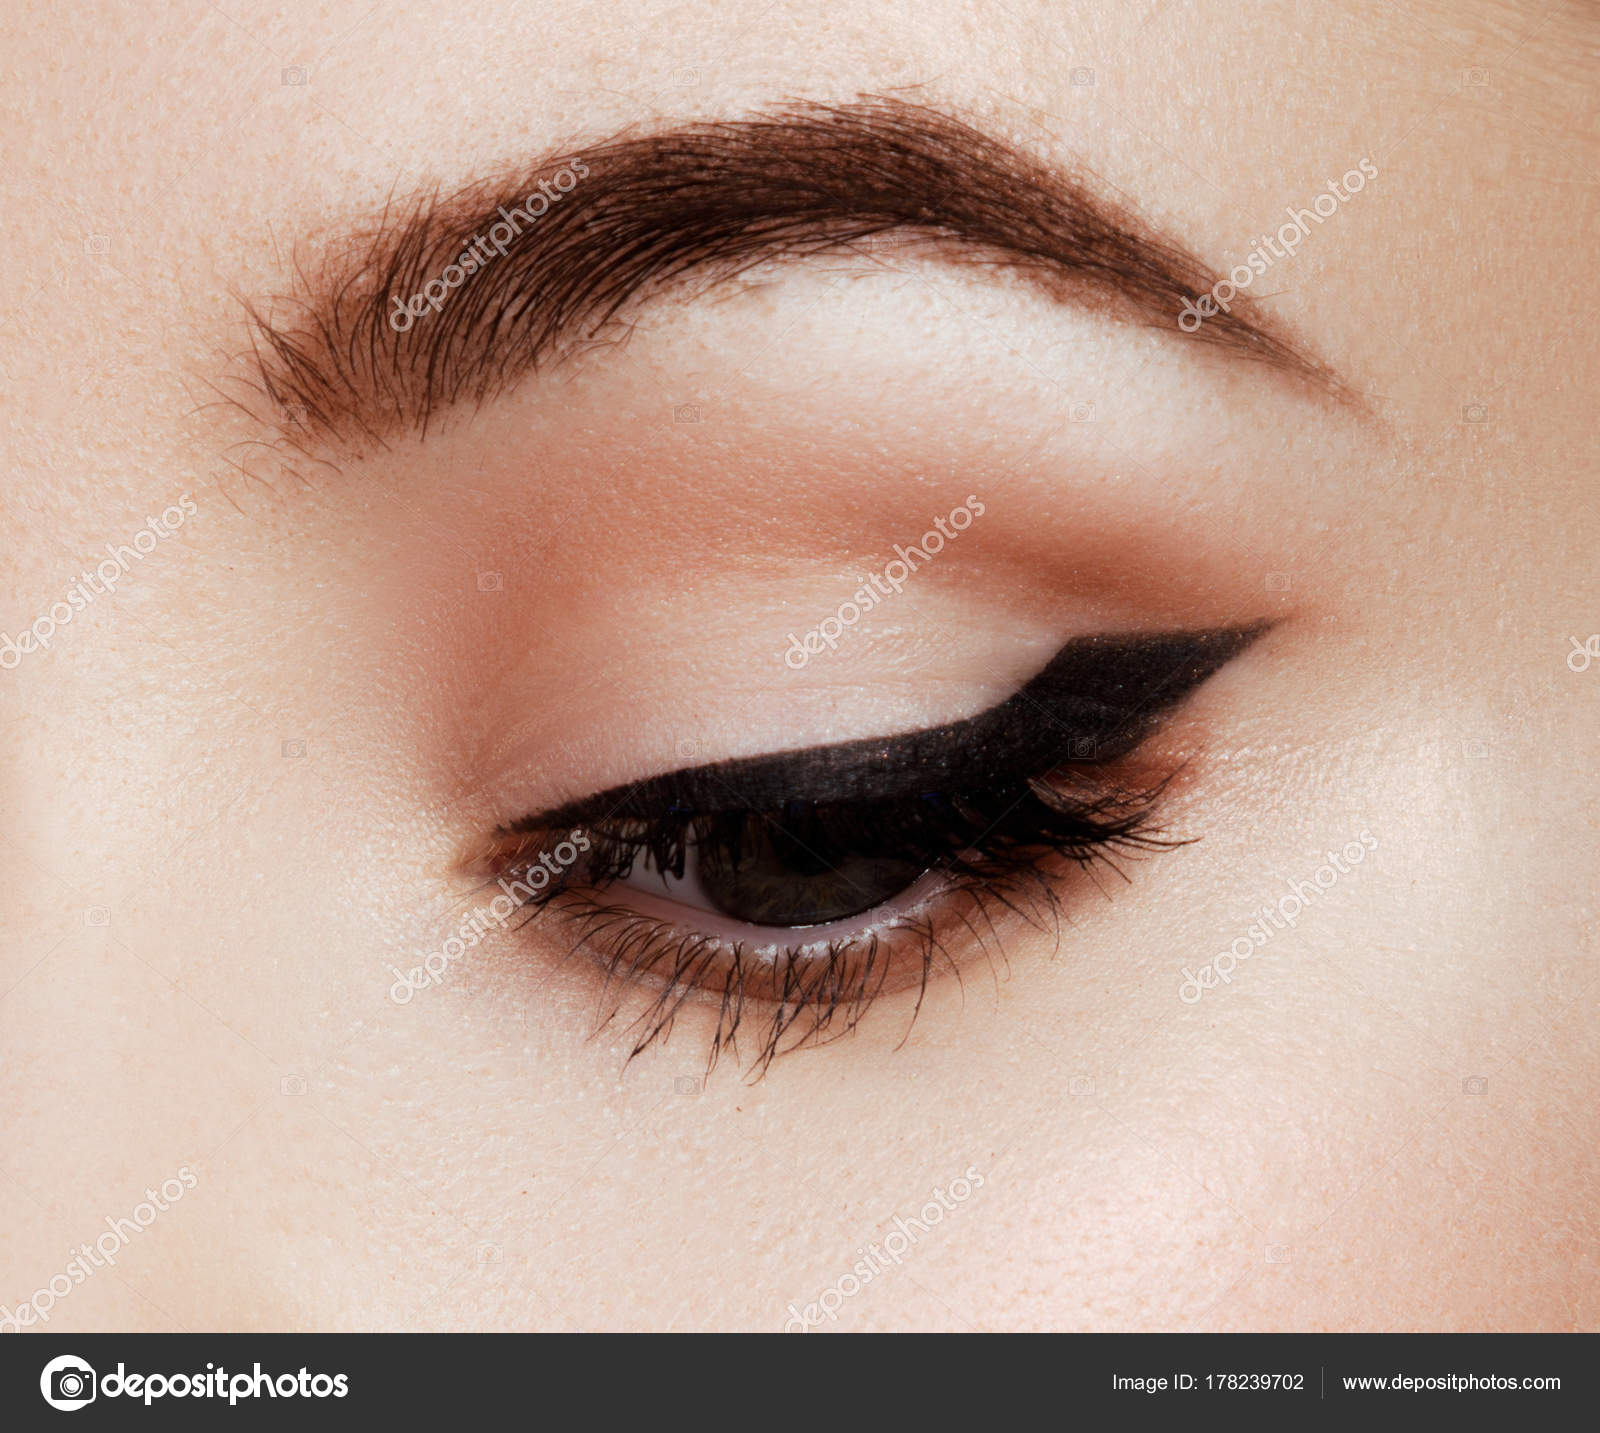 Makeup Artist Applies Eye Makeup Close Up Macro Of Beautiful Eye